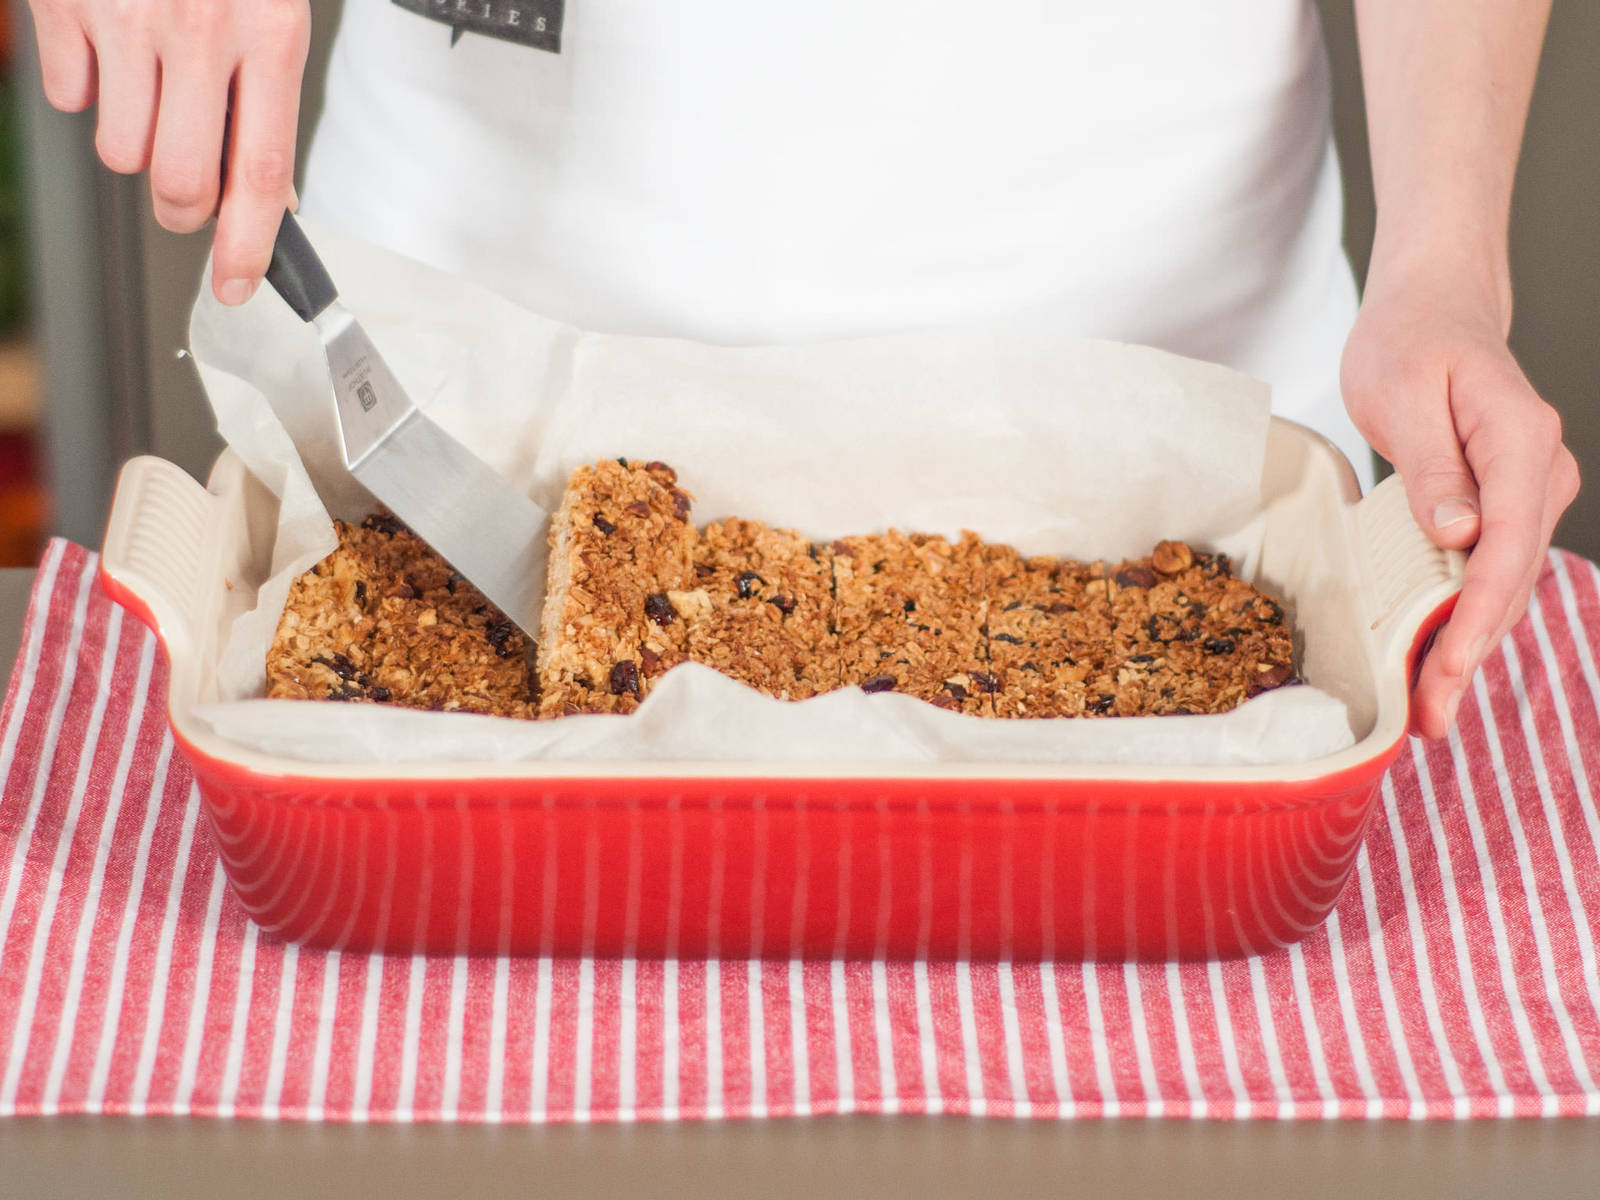 Cut baked oats into bars. Enjoy as a light snack!